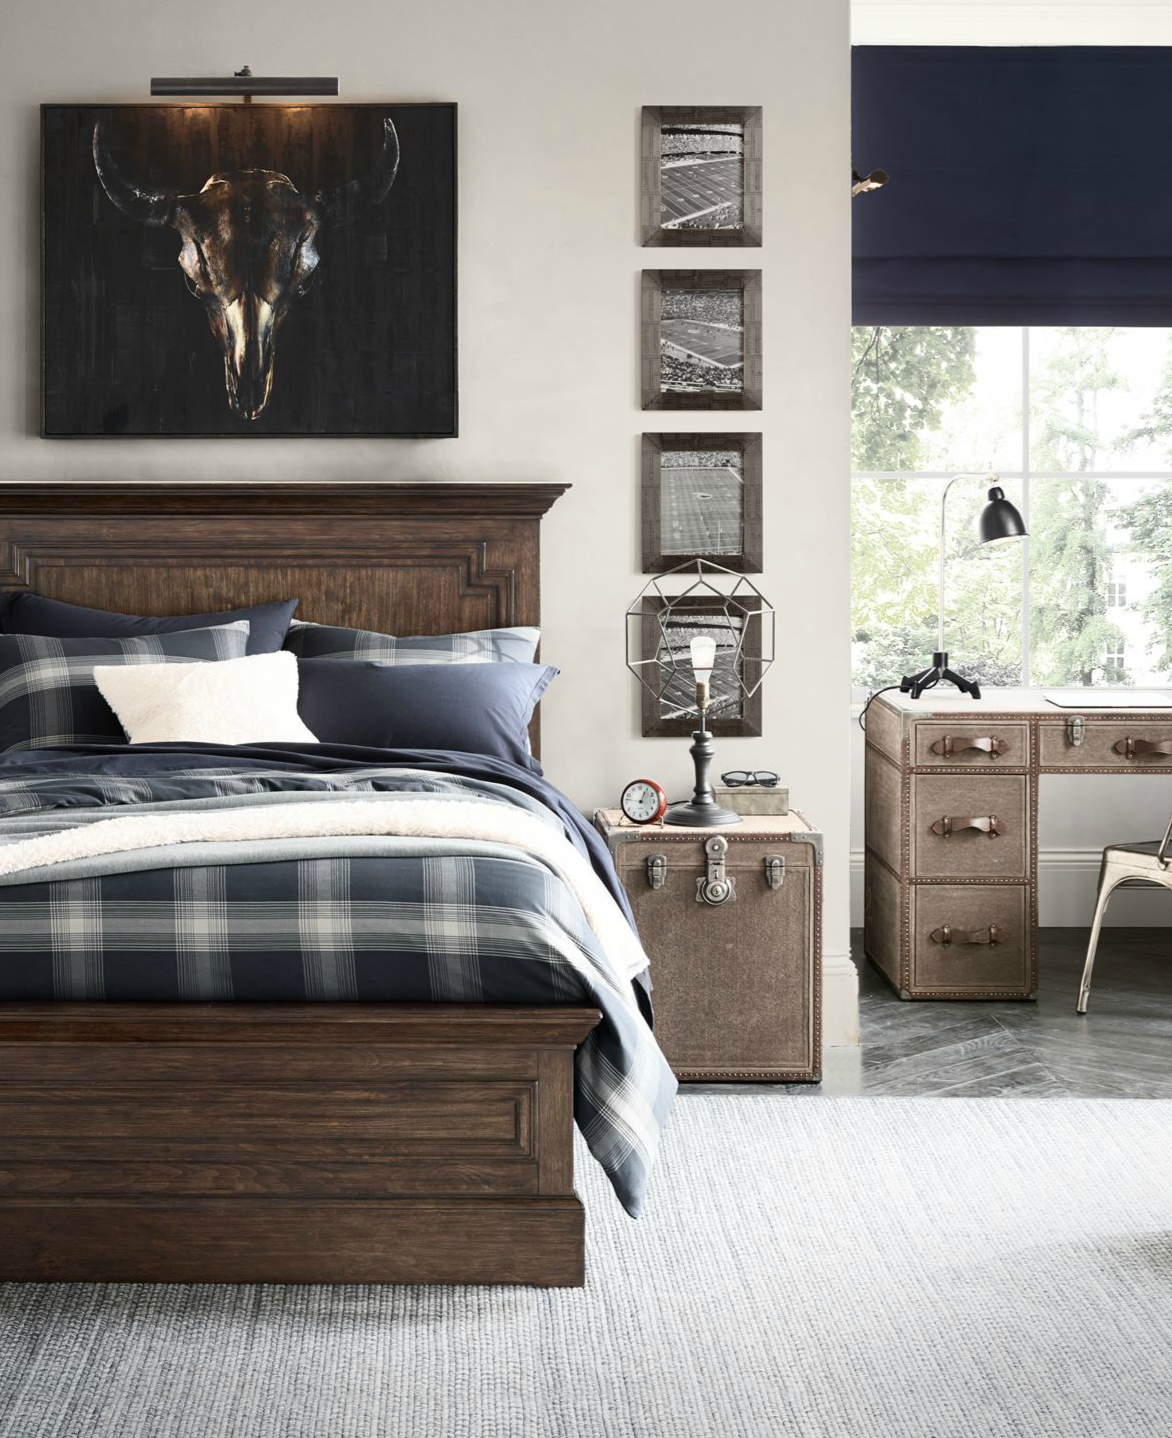 Classic Décor And Sported Themed Accents Make For A Timeless Boyu0027s Bedroom